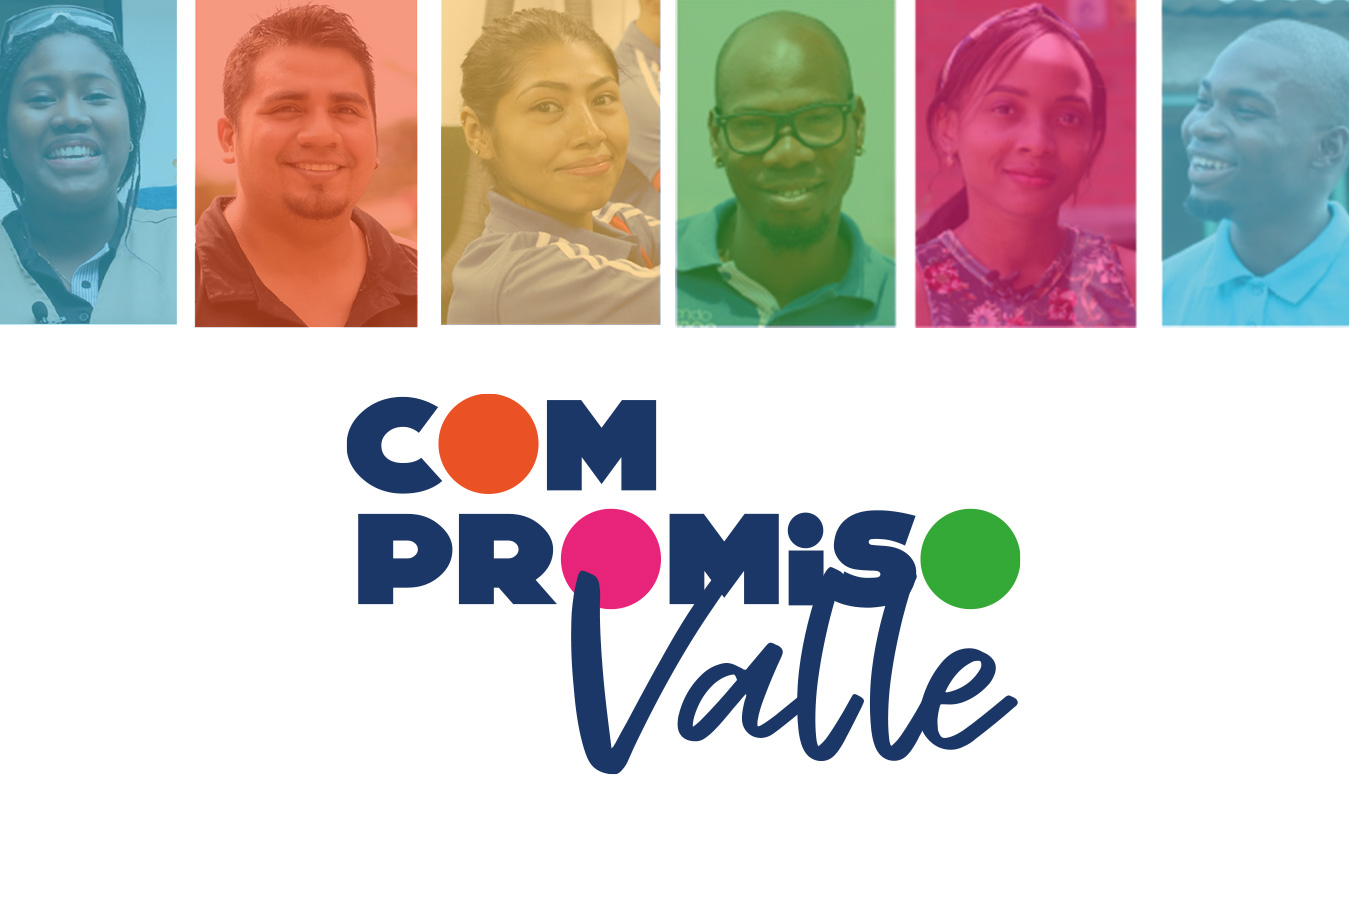 Banner. Compromiso Valle